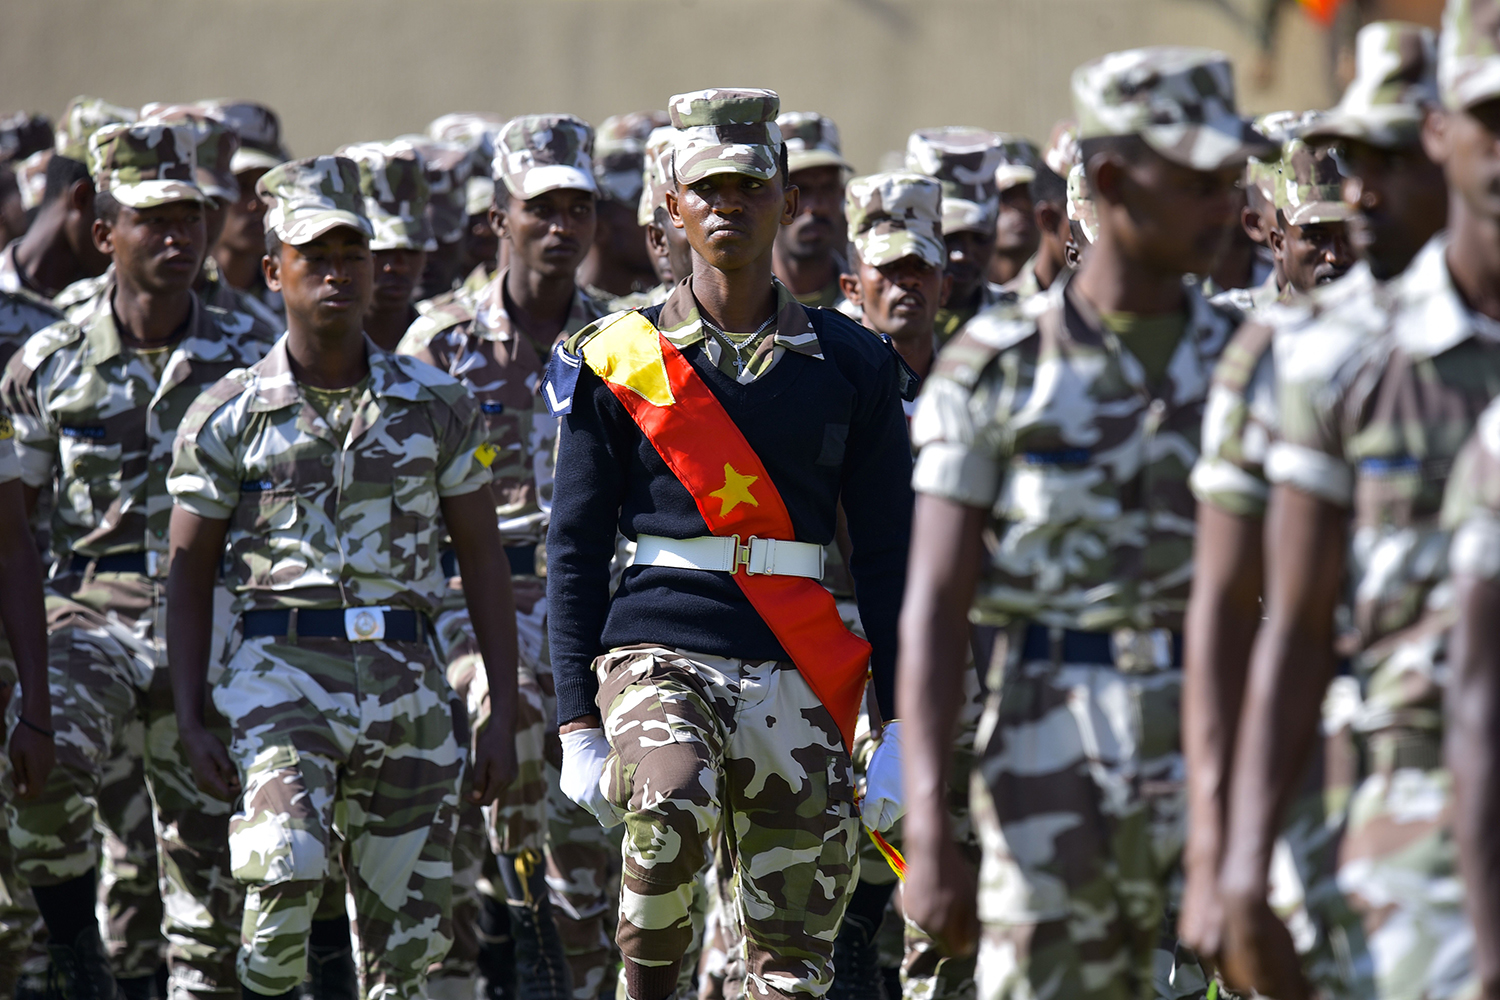 Members of the Tigray region special police force parade during celebrations marking the 45th anniversary of the launching of the Armed Struggle of the Peoples of Tigray in Mekele, Ethiopia, on Feb. 19.